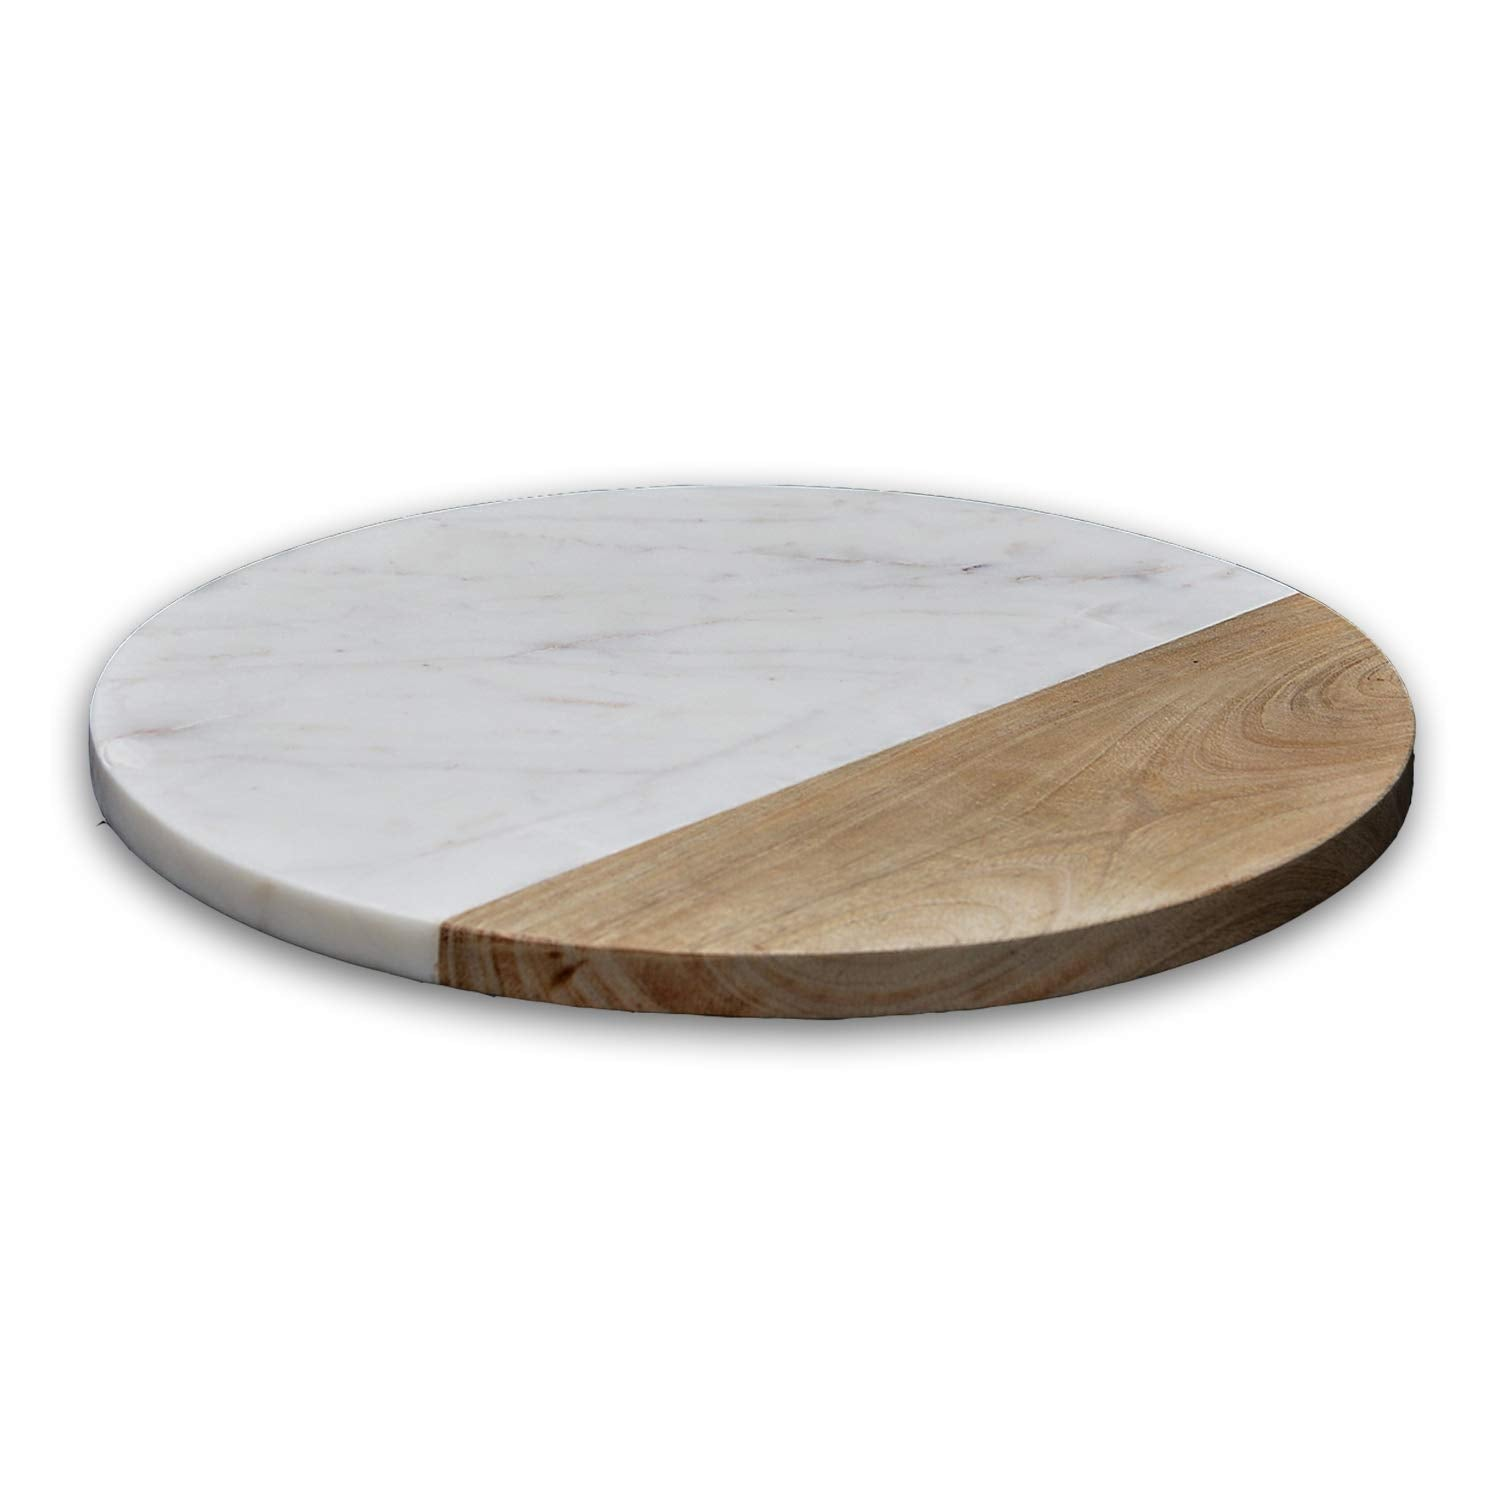 CHOPPING BOARD,DIM:30X1.5,COLOR:WHITE MARBLE/ACASIA WOOD - Mabrook Hotel Supplies